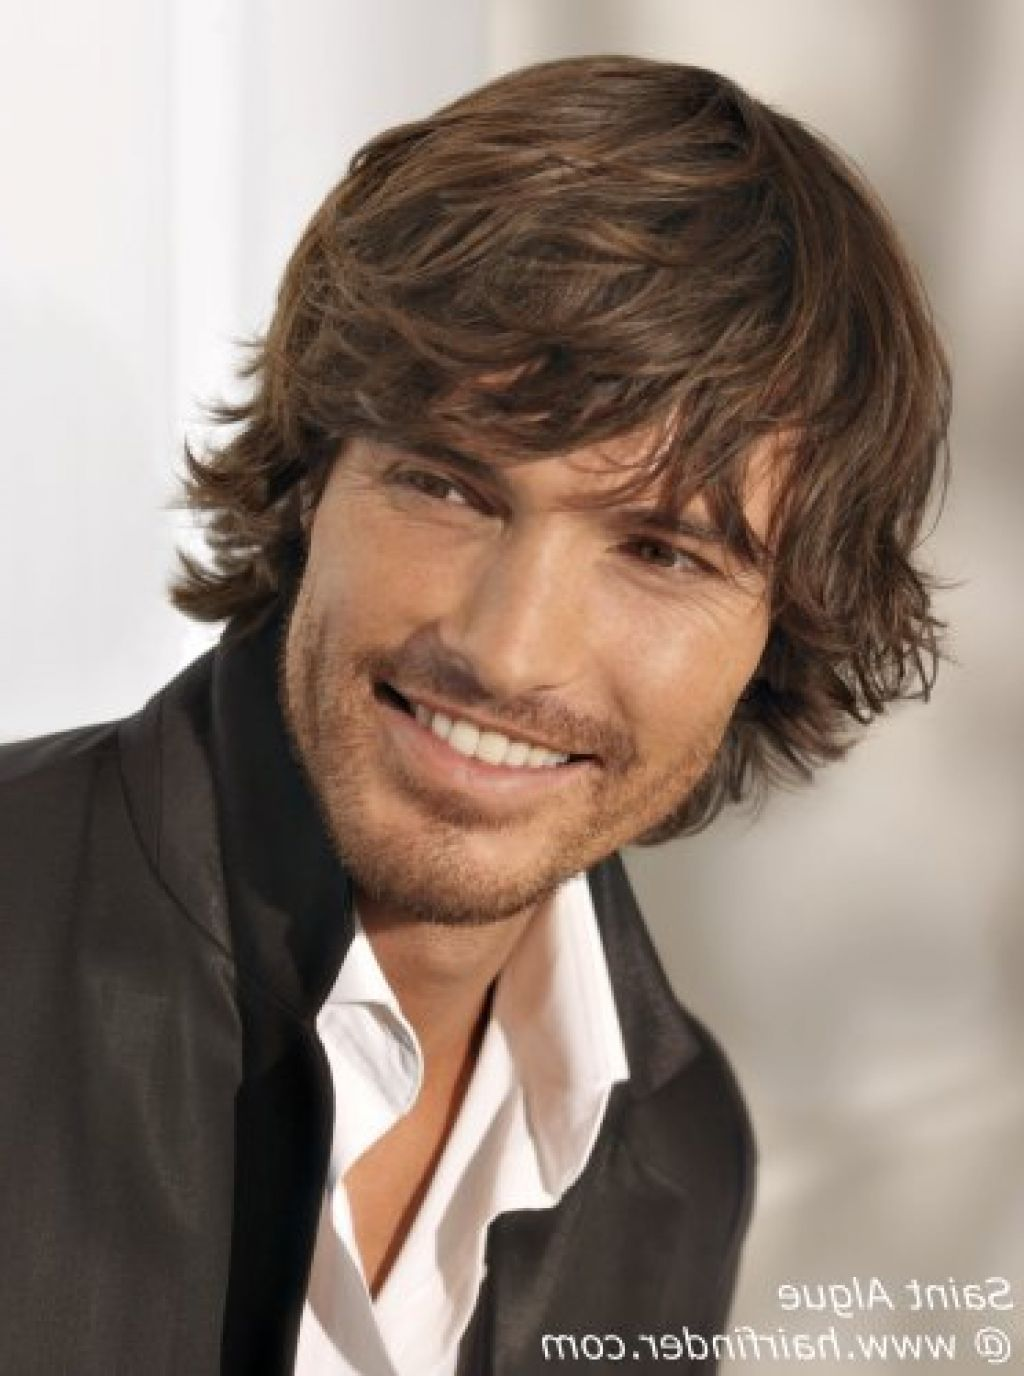 mens shaggy hairstyles images  Menus hairstyles  Pinterest